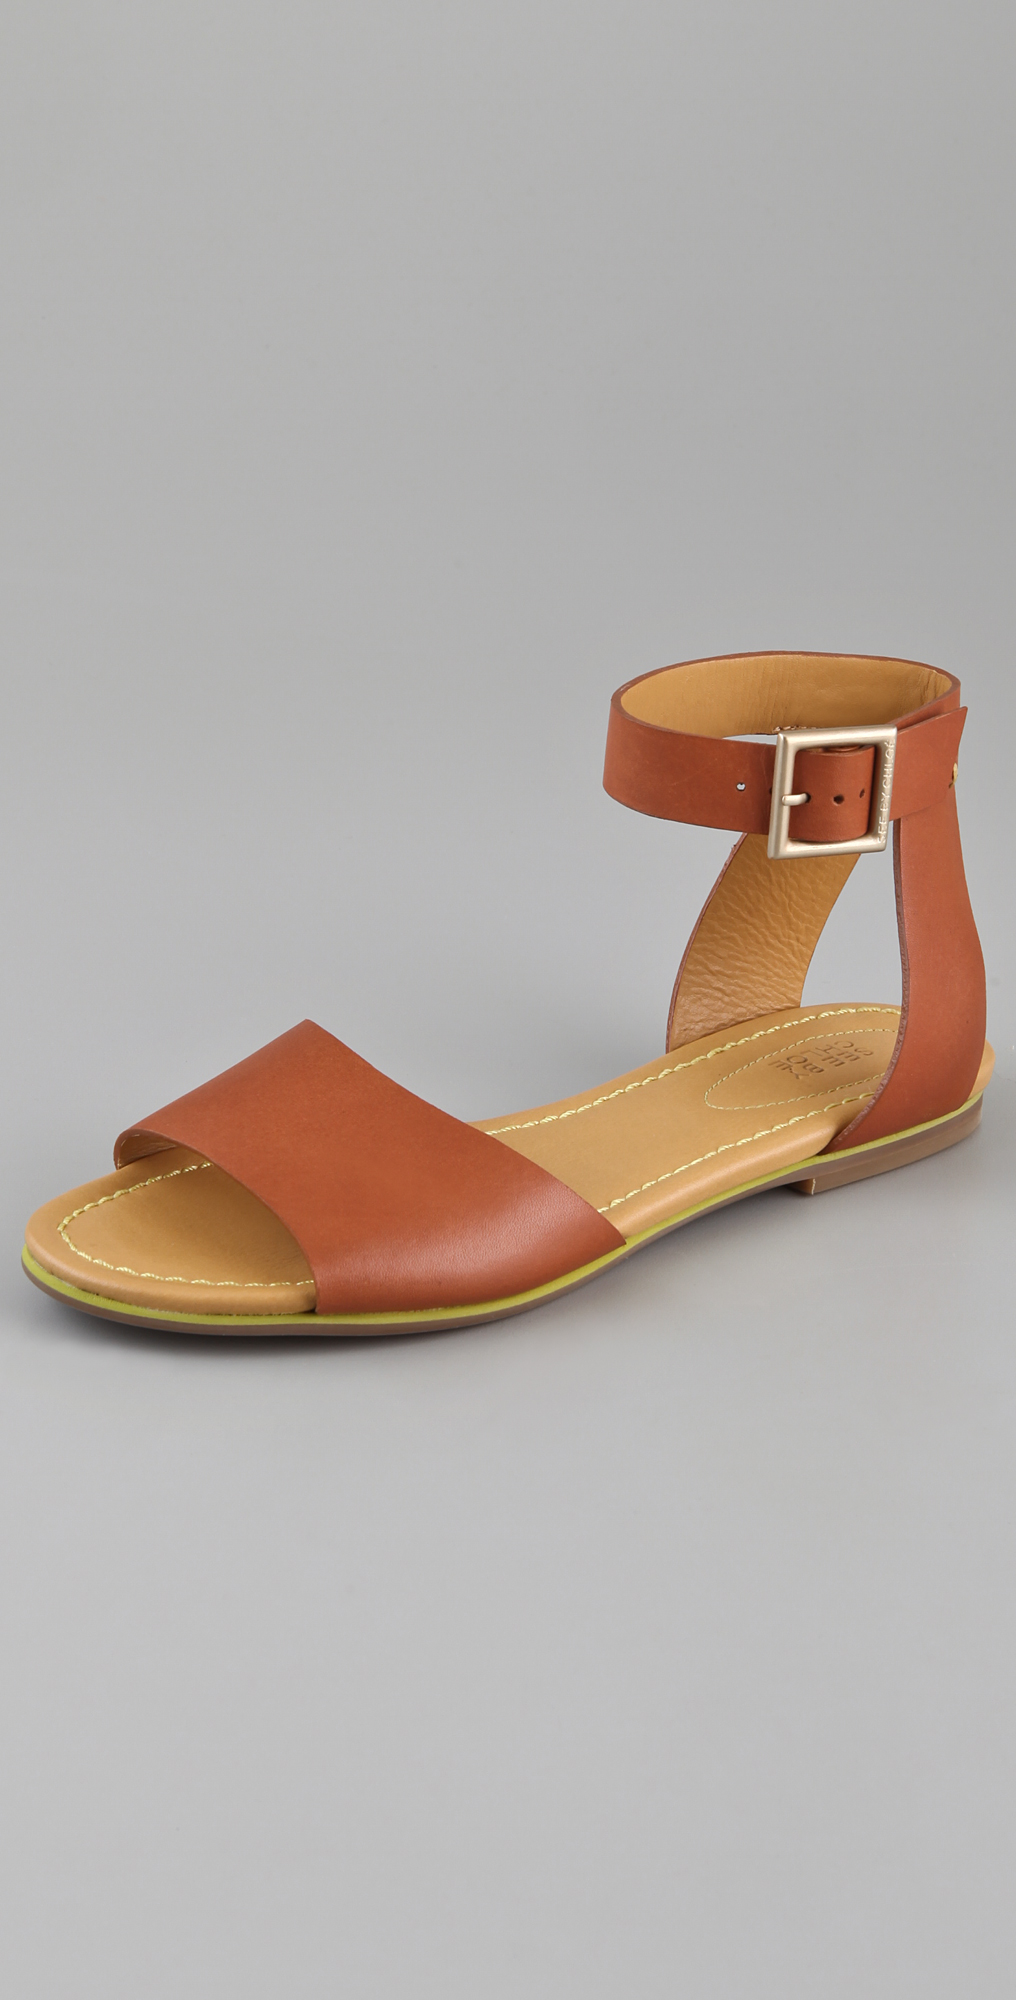 56010b12a69 See by Chloe Broad Band Flat Sandals on PopScreen